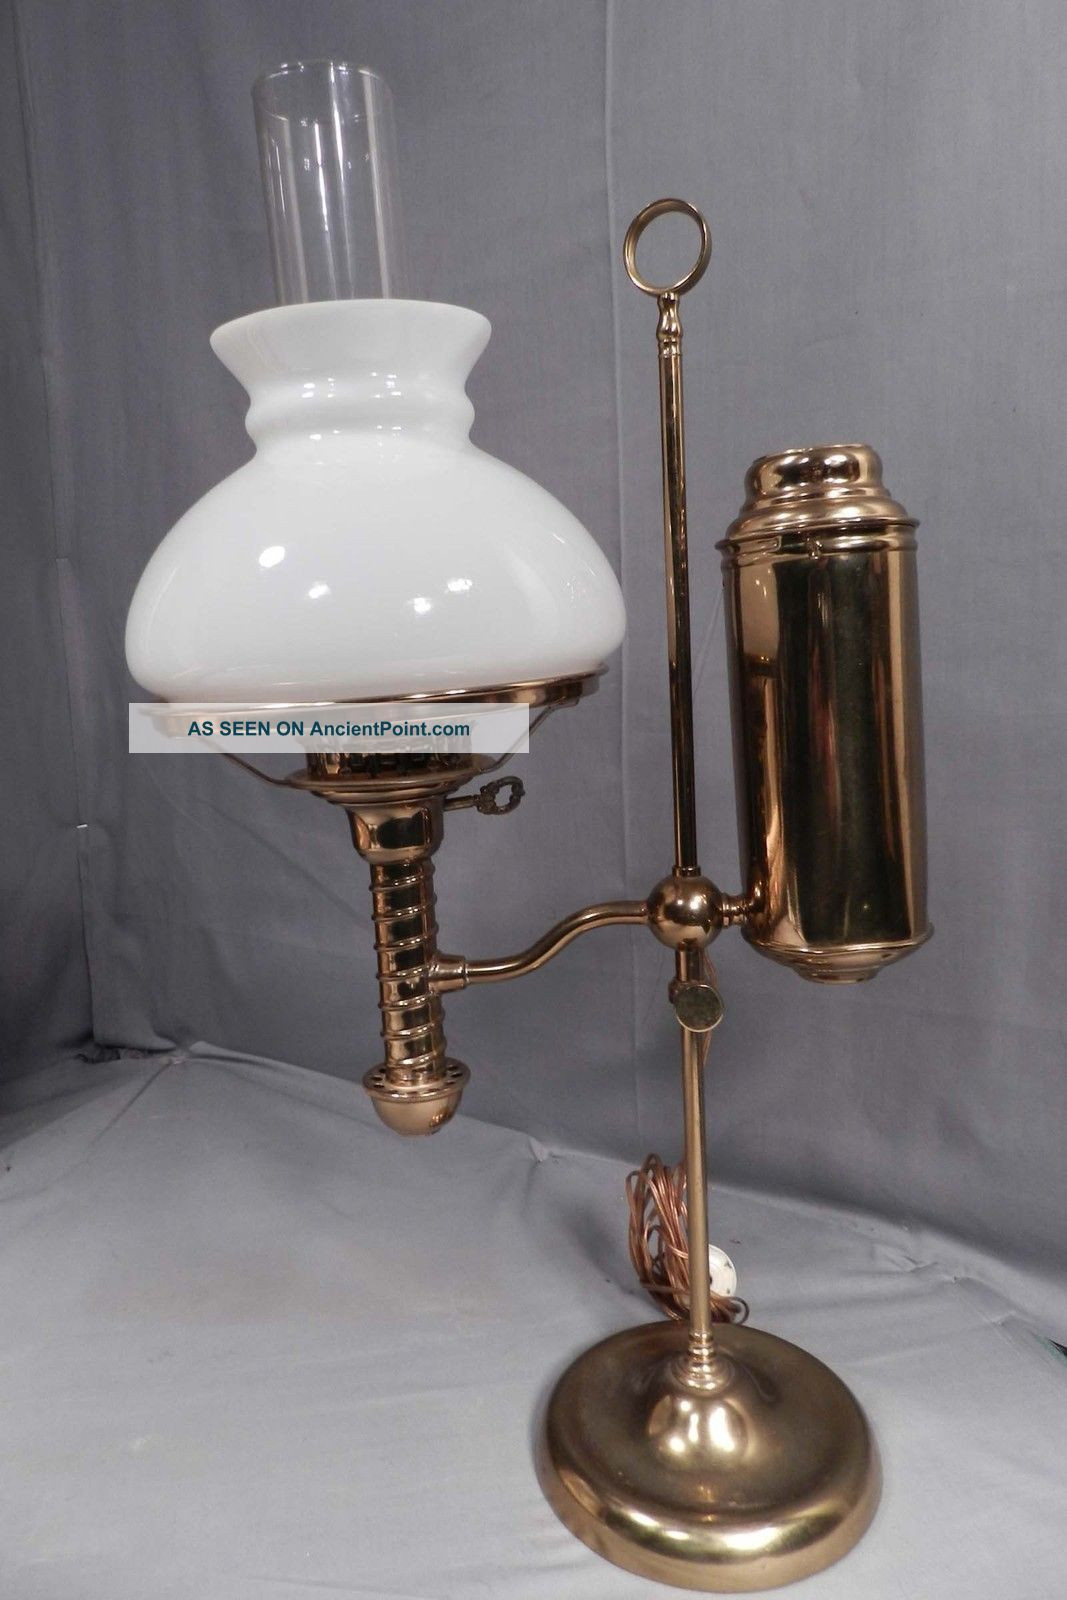 Best ideas about Antique Desk Lamp . Save or Pin Antique brass desk lamp offers a dignified friendly look Now.